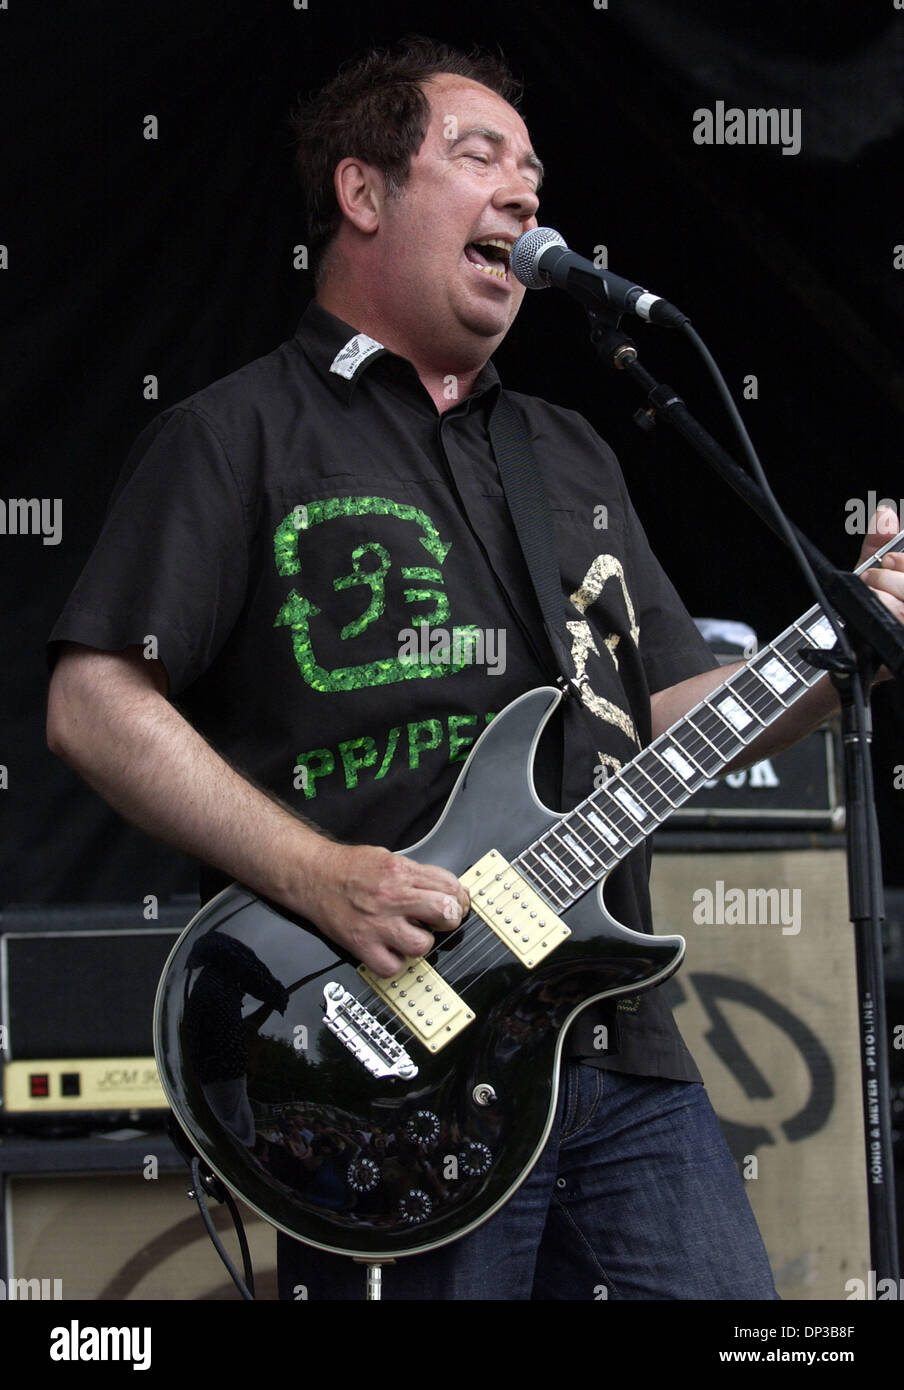 Jun 27, 2006; Raleigh, NC, USA; Legendary Punk Rock Musicians Buzzcocks perform live as the 2006 Vans Warped Tour makes a stop at Alltel Pavilion located in Raleigh.  Mandatory Credit: Photo by Jason Moore/ZUMA Press. (©) Copyright 2006 by Jason Moore - Stock Image